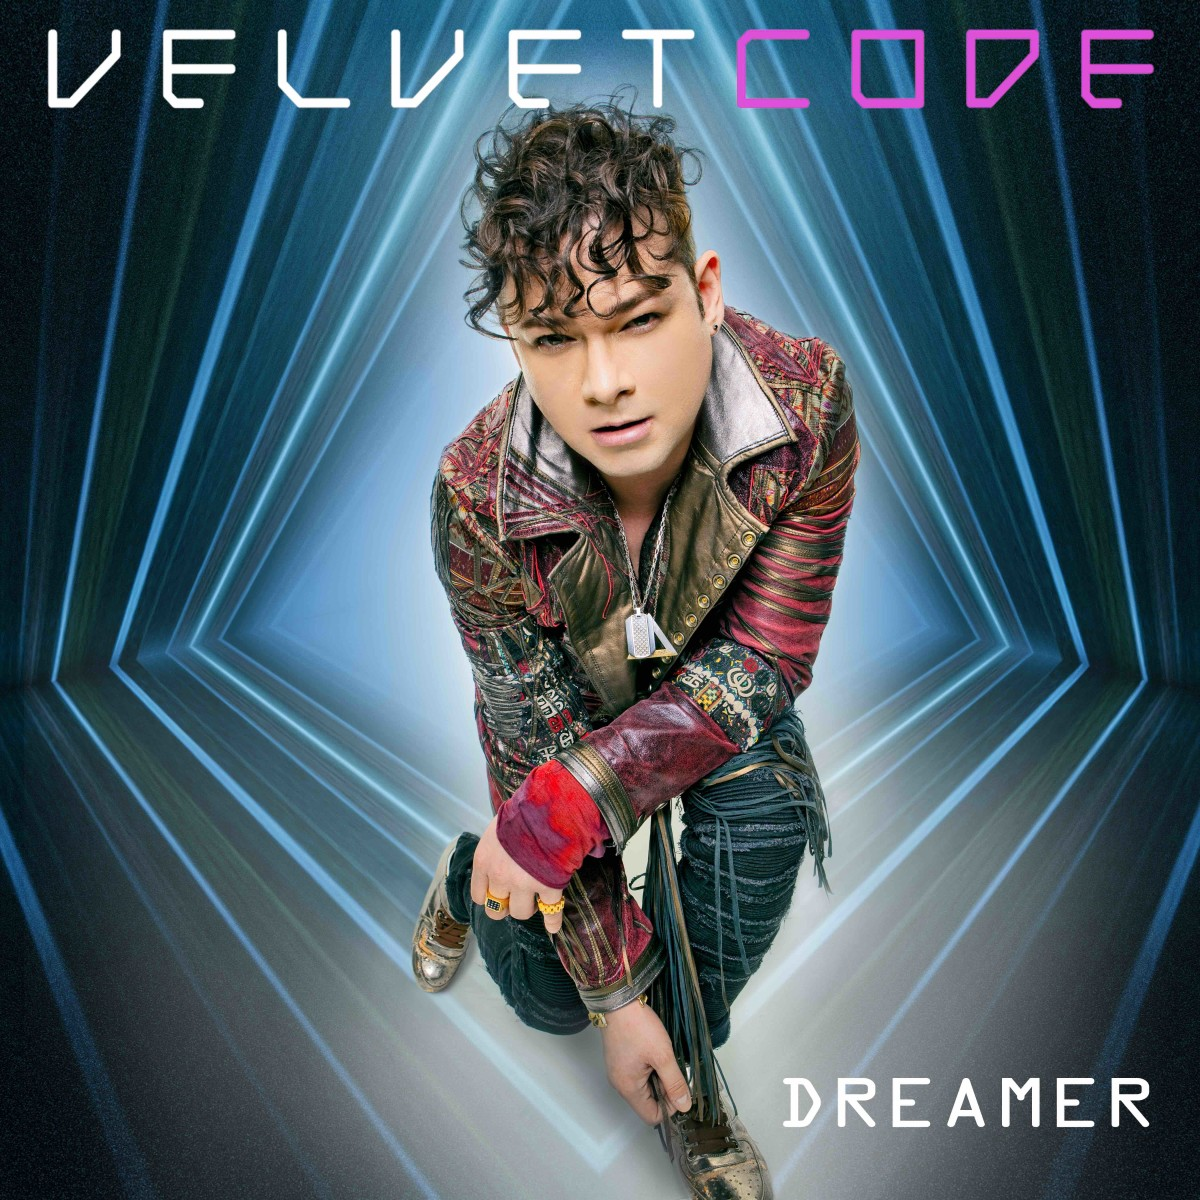 Velvet Code - DREAMER LP (Album Cover Artwork)